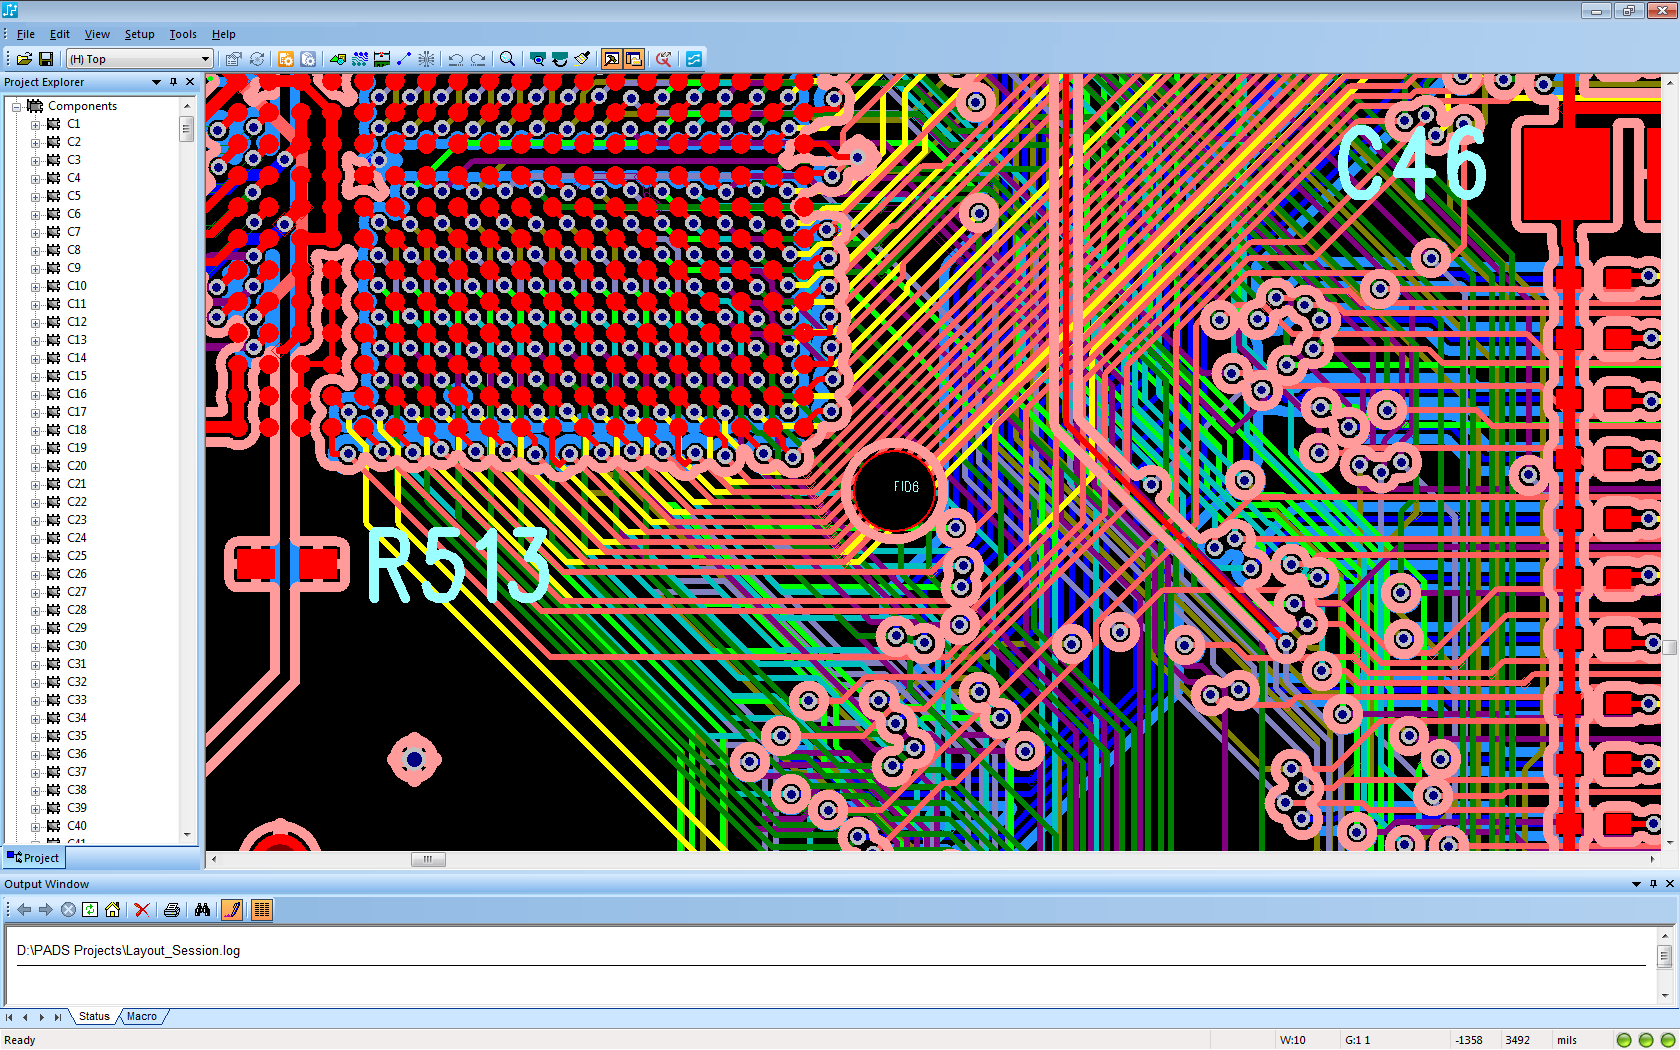 Designing Of Measuring Electronics Technology Transfer Agency Printed Circuit Board Projects A Design Fragment 10 Layer